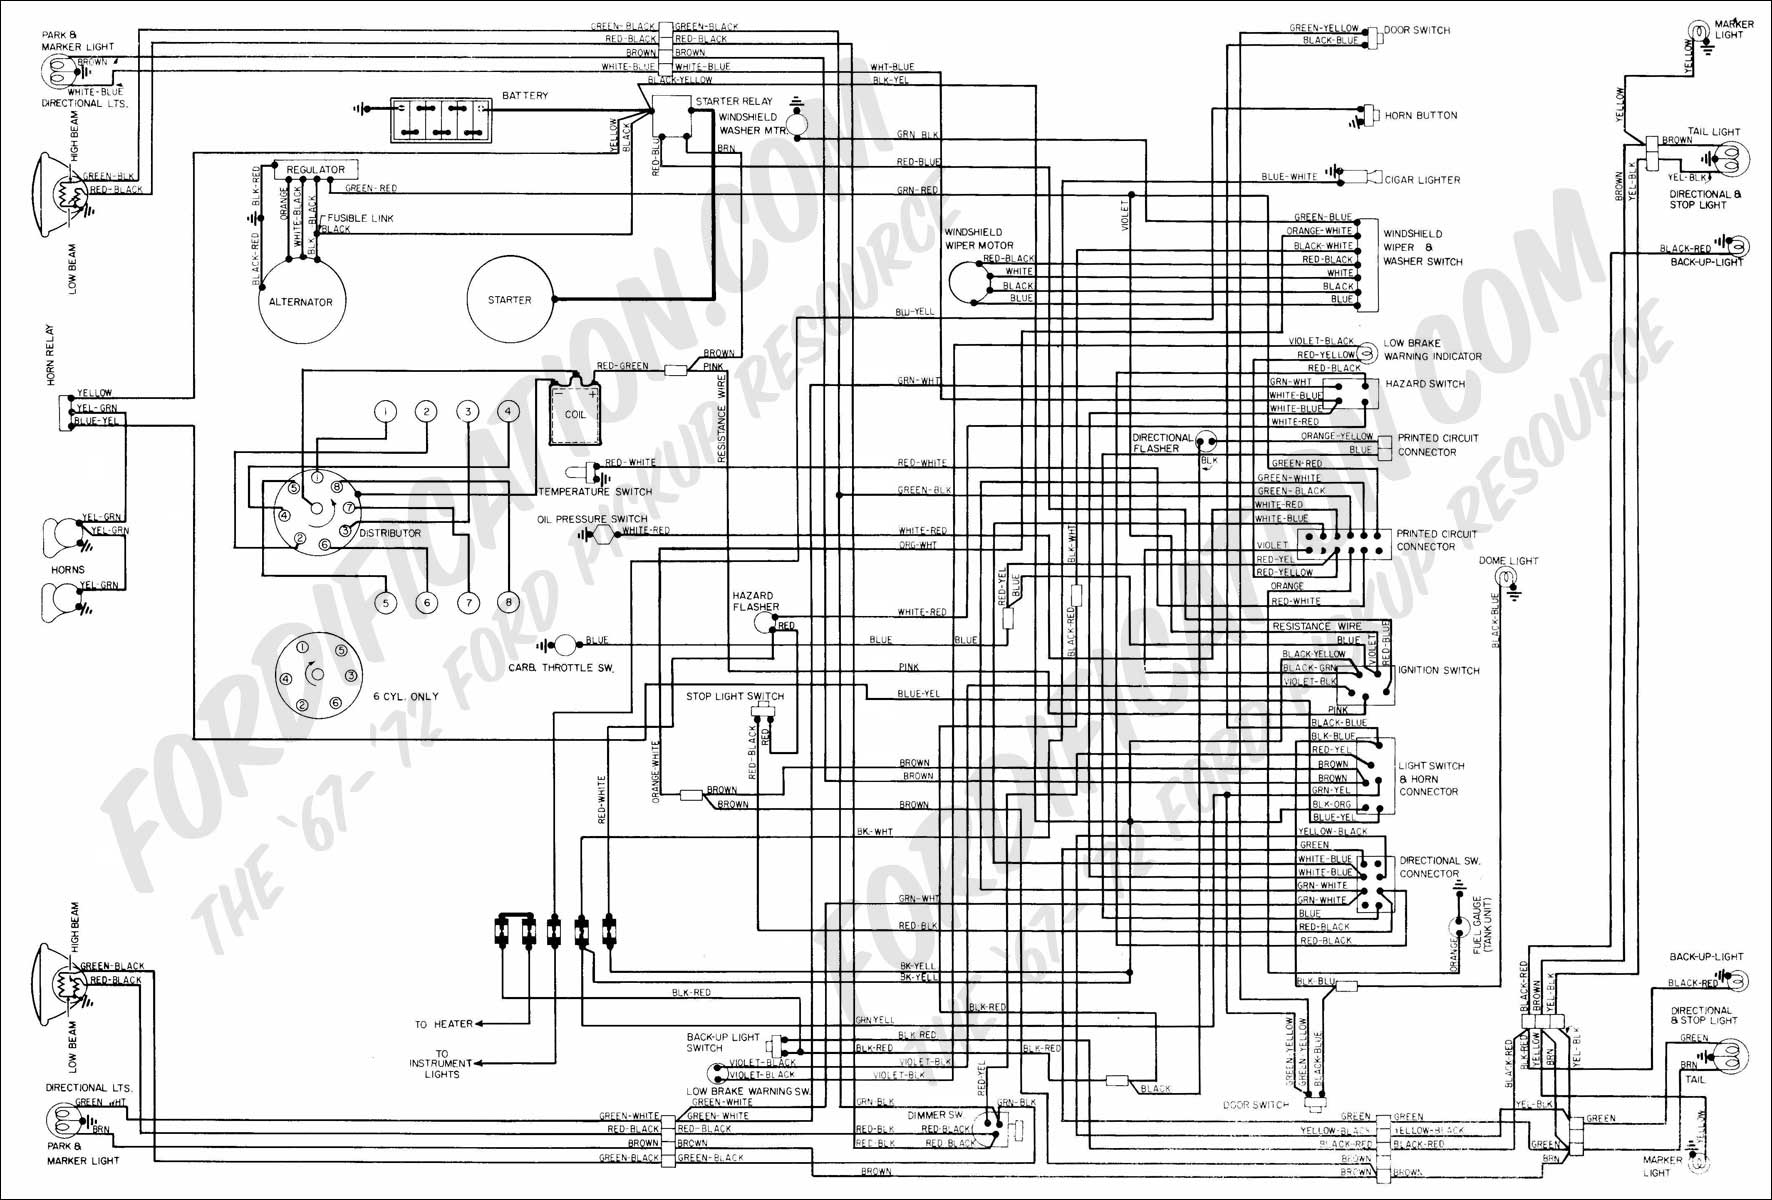 wiring diagram 72_quick?resize\\\\\\\\\\\\\\\\\\\\\\\\\\\\\\\\\\\\\\\\\\\\\\\\\\\\\\\\\\\\\\\\\\\\\\\\\\\\\\\\\\\\\\\\\\\\\\\\\\\\\\\\\\\\\\\\\\\\\\\\\\\\\\\=665%2C450 makita 9227c wiring diagram wiring diagrams makita 9227c wiring diagram at fashall.co